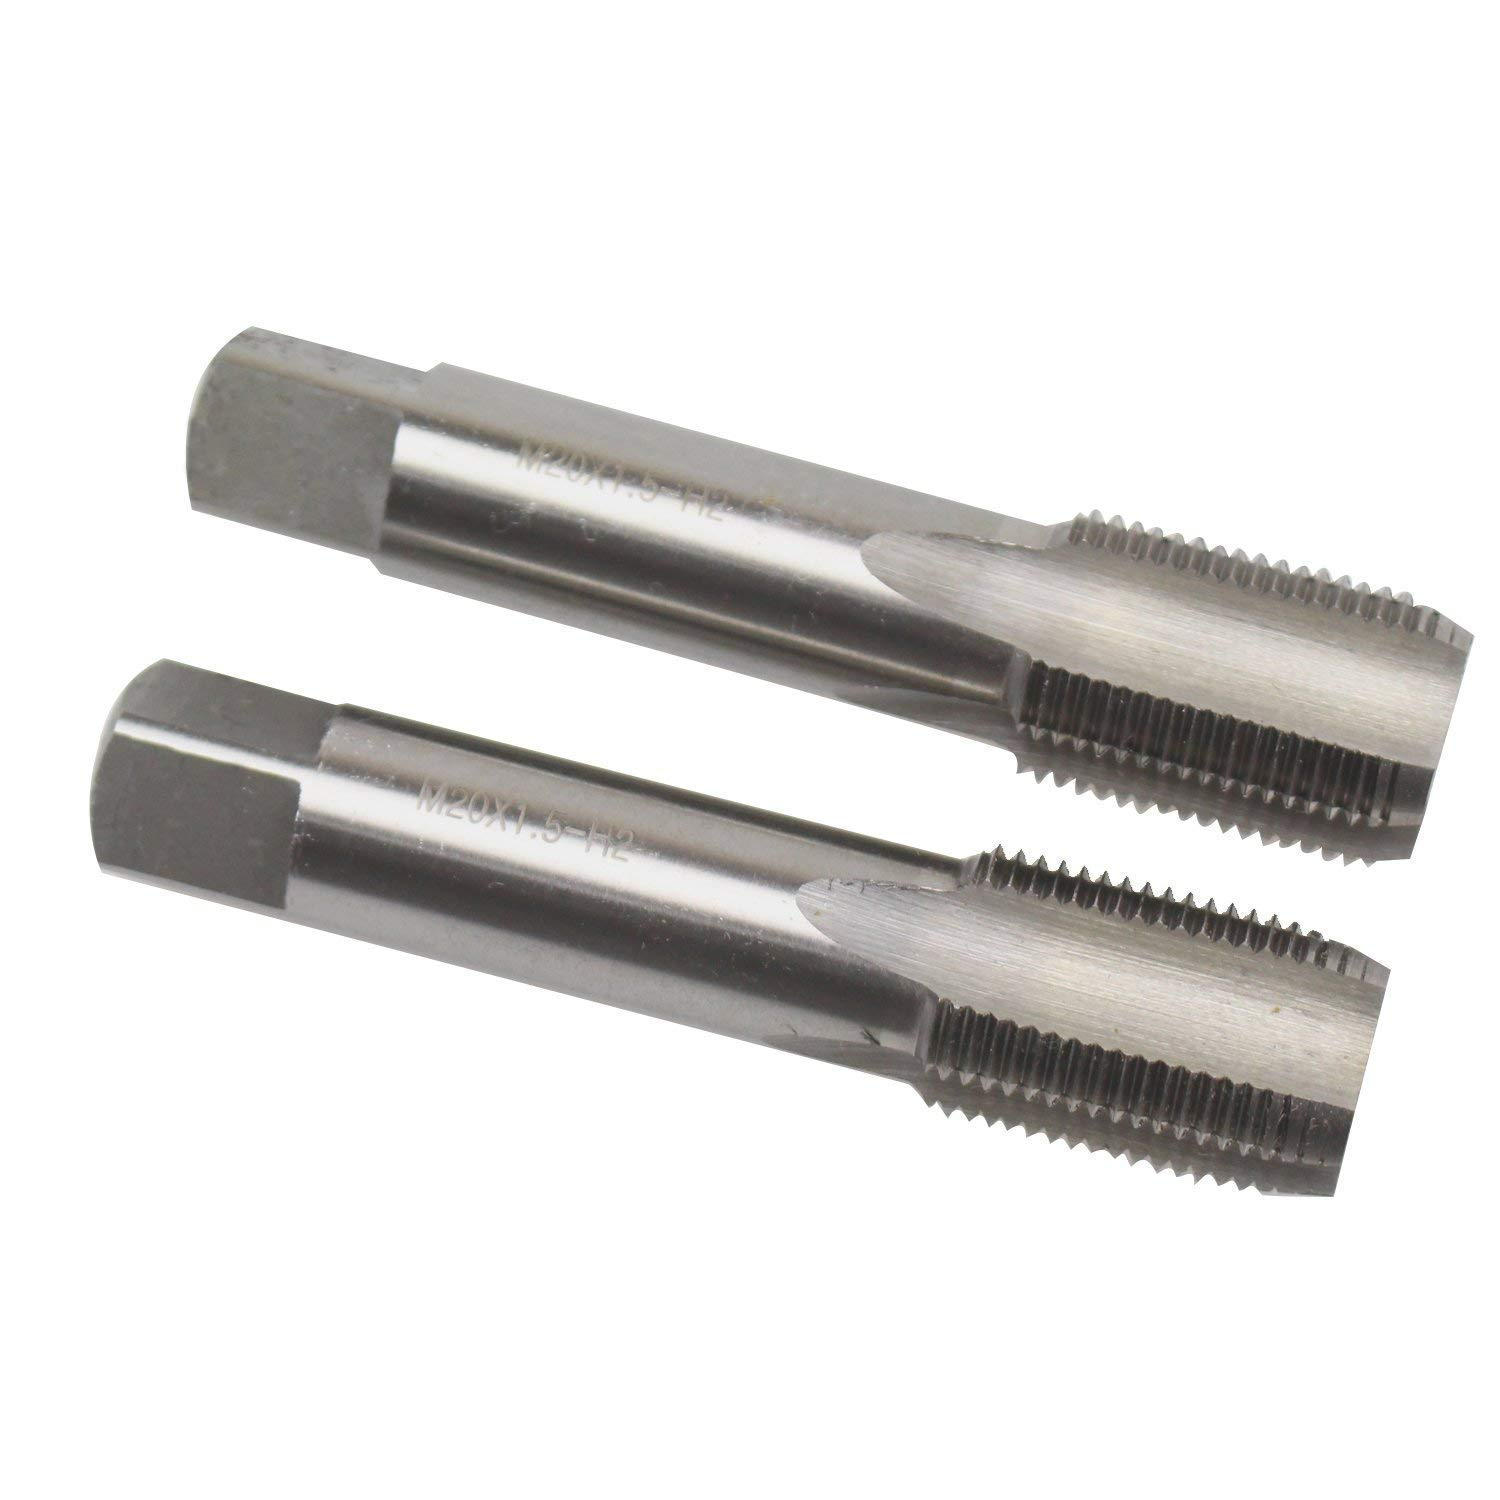 M20 X 1.5 Metric HSS Right Hand Thread Tap(2